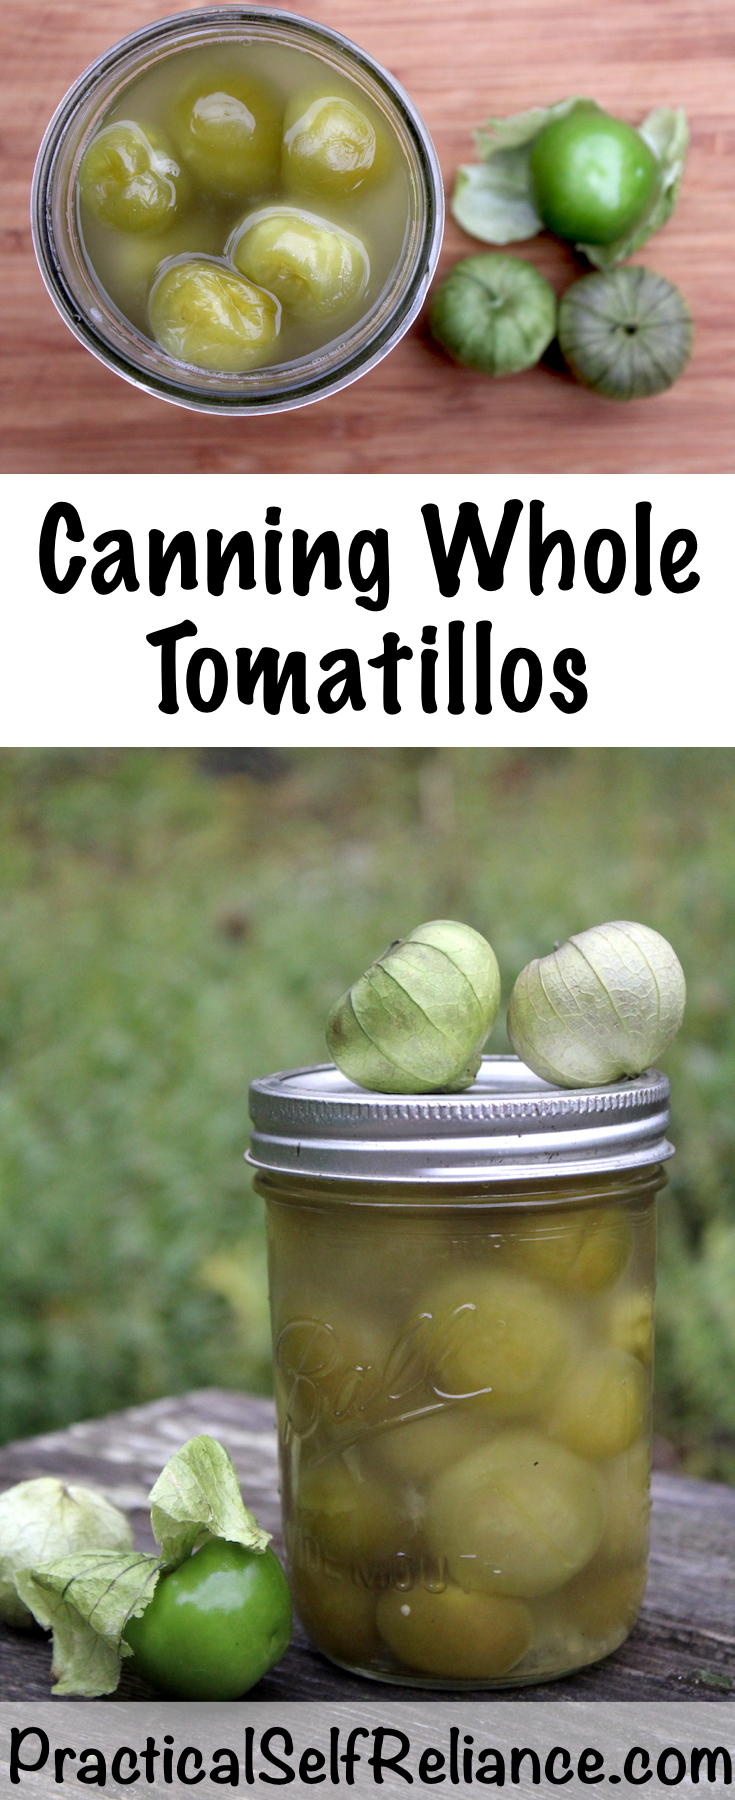 Canning Tomatillos ~ Instructions for Water Bath or Pressure canning whole tomatillos ~ Preserving Tomatillos #tomatillos #recipe #canning #foodpreservation #howtocook #homesteading #selfsufficiency